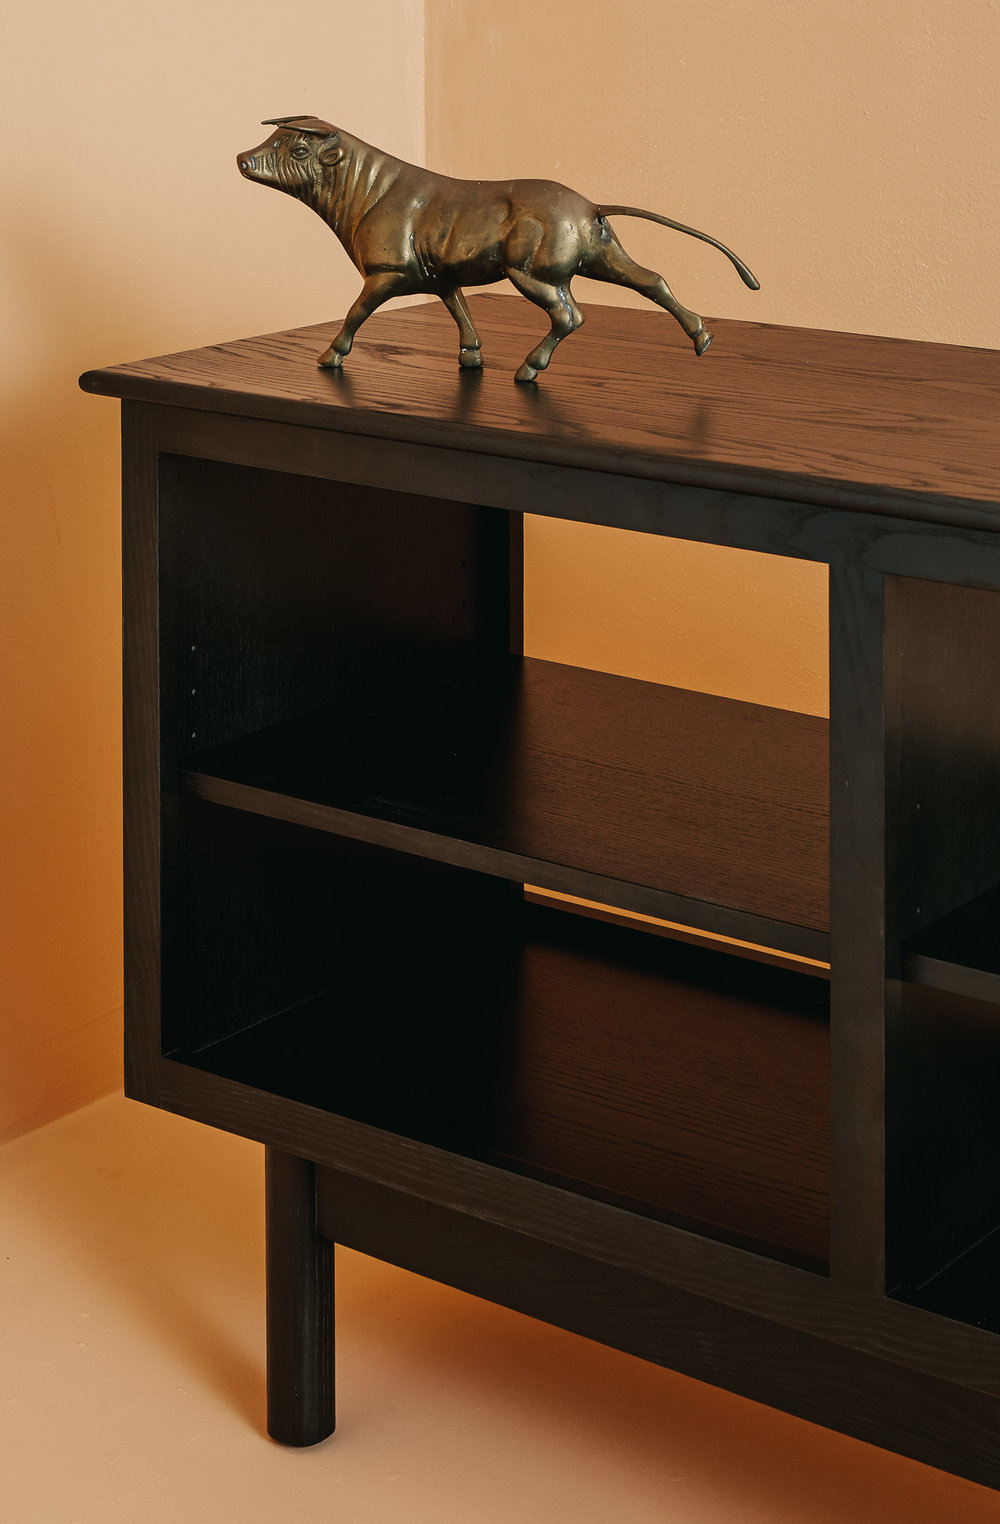 adjustable shelves small open bookcase .jpg